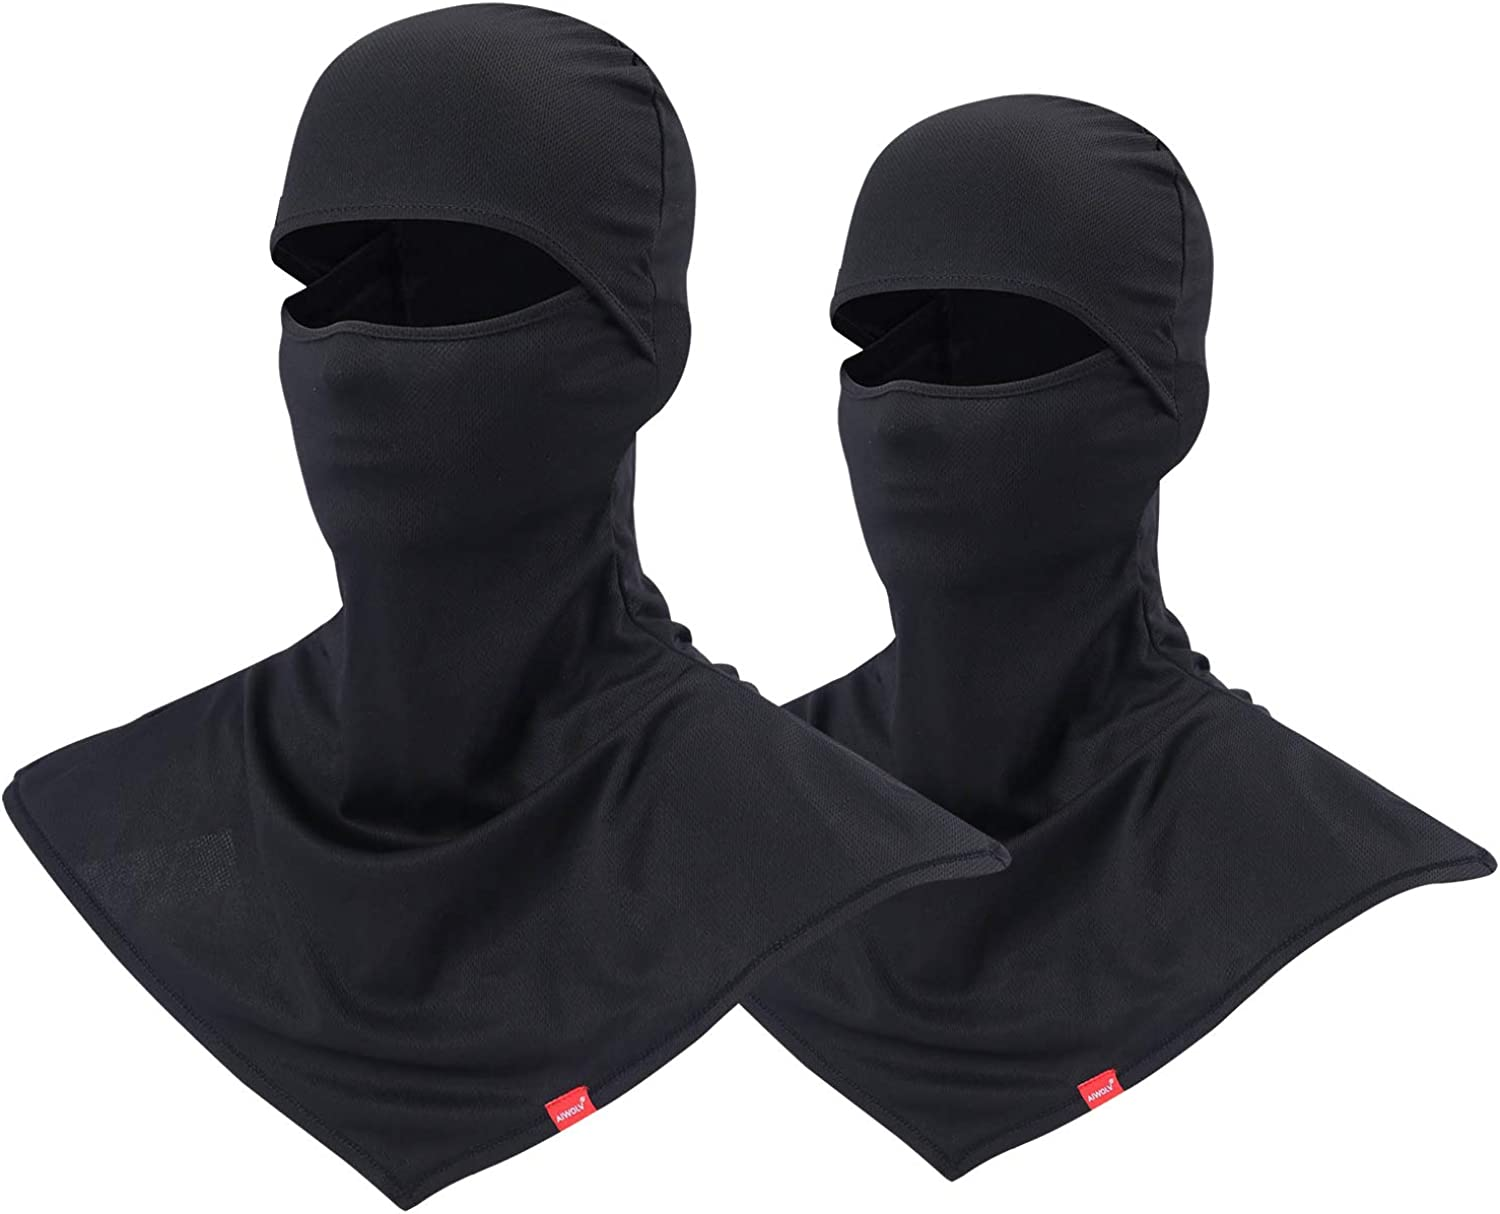 3 Pieces Summer Balaclava Sun Protection Face Mask Breathable Long Neck Cover